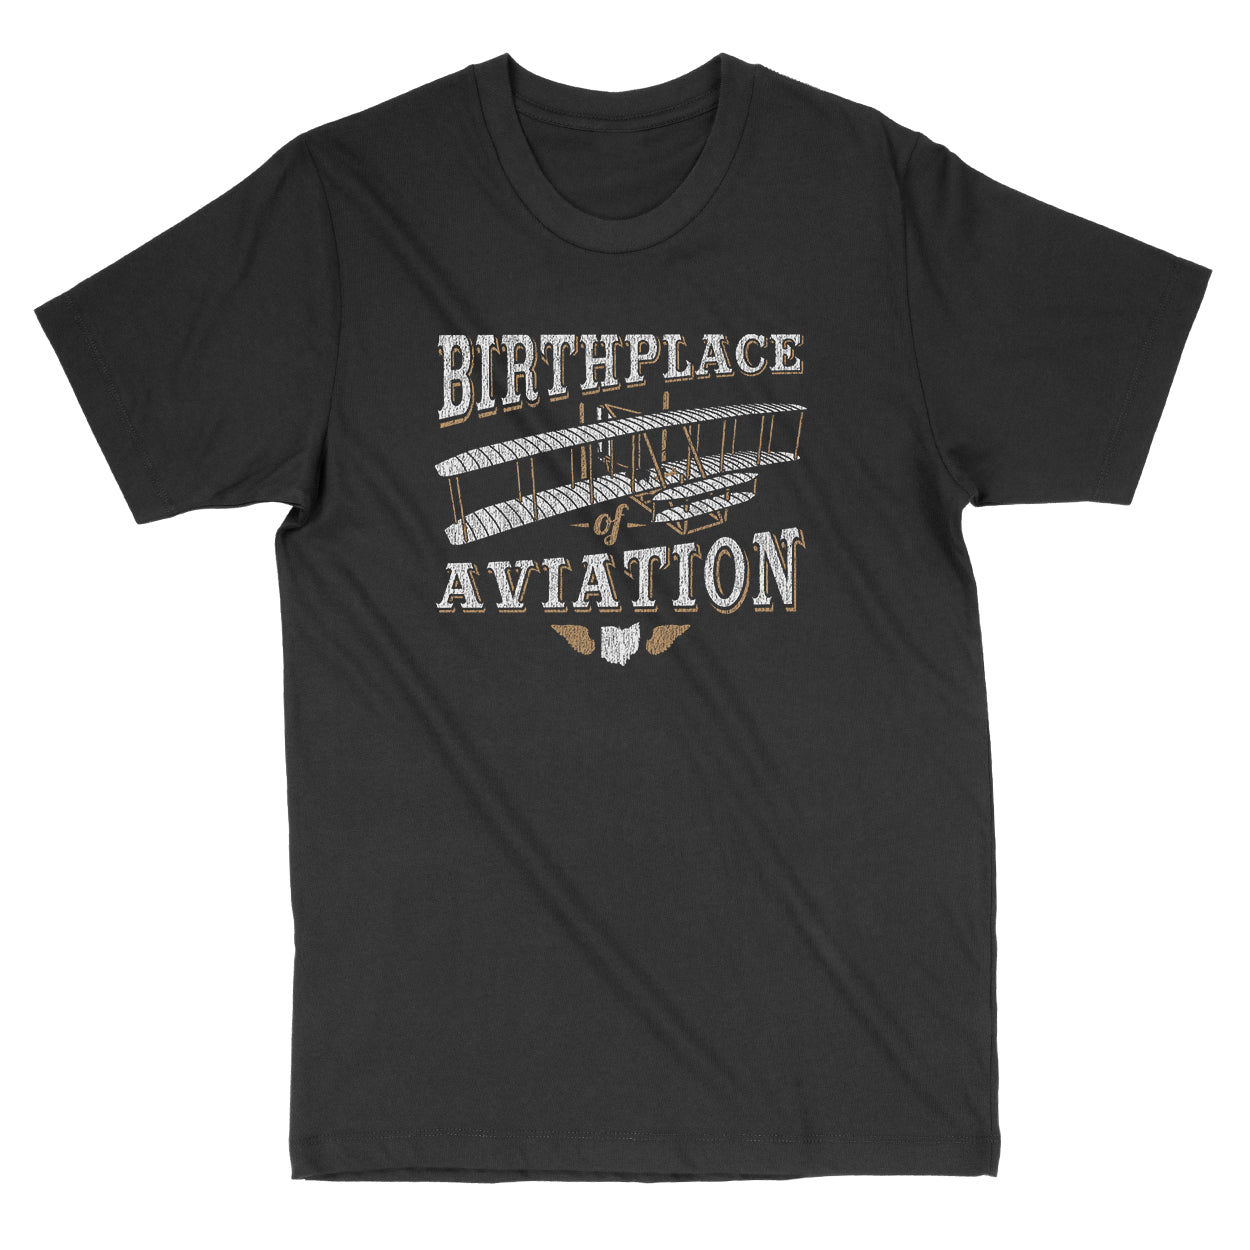 The Birthplace Of Aviation Ohio Men's T-Shirt - Clothe Ohio - Soft Ohio Shirts